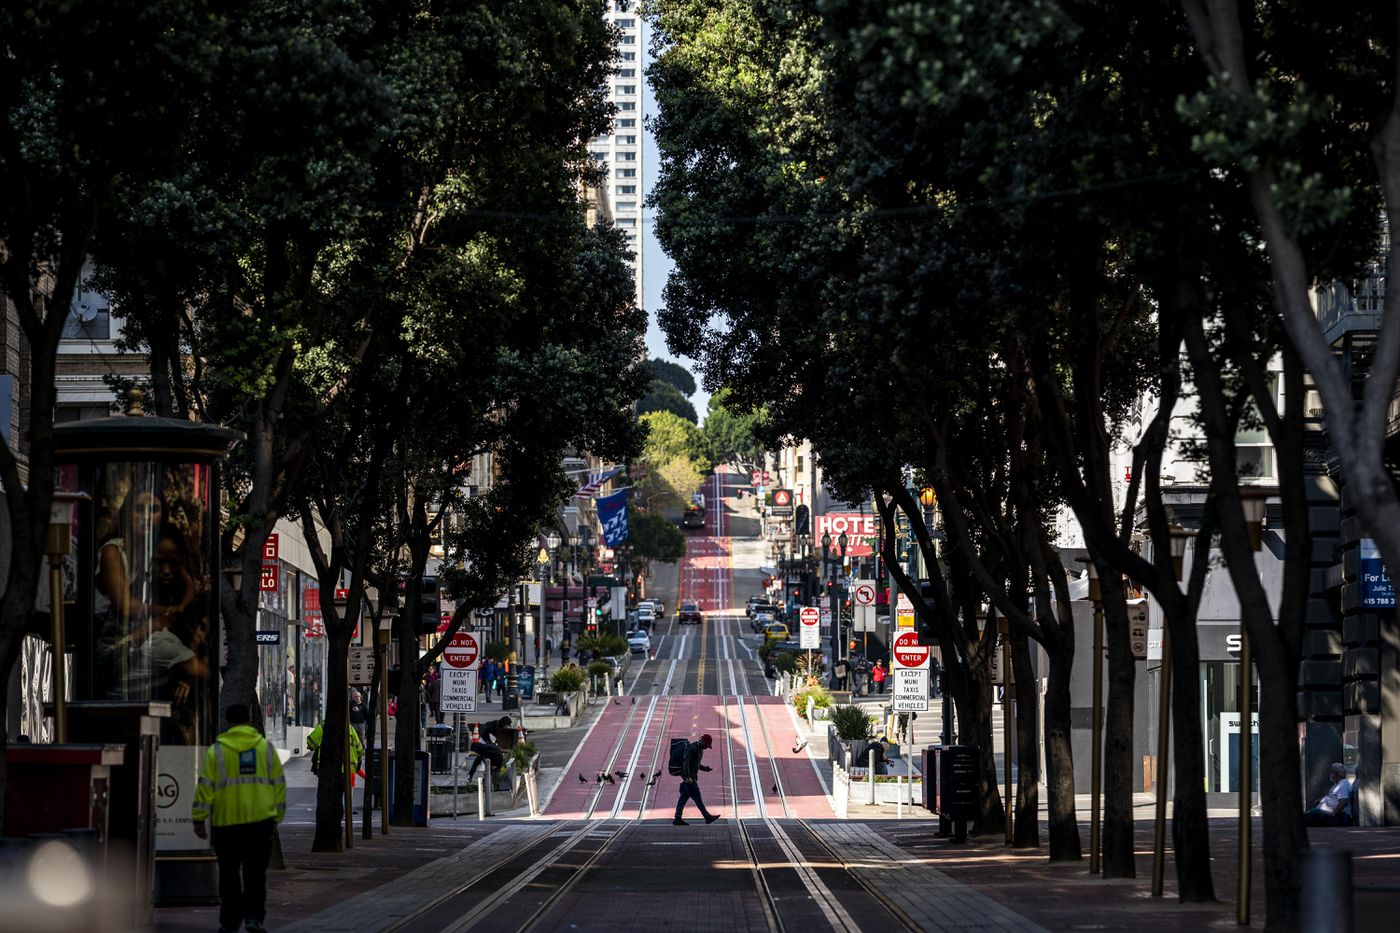 A few people walk the streets of San Francisco during 'stay-at-home ' orders March 20. Washington Post photo by Melina Mara